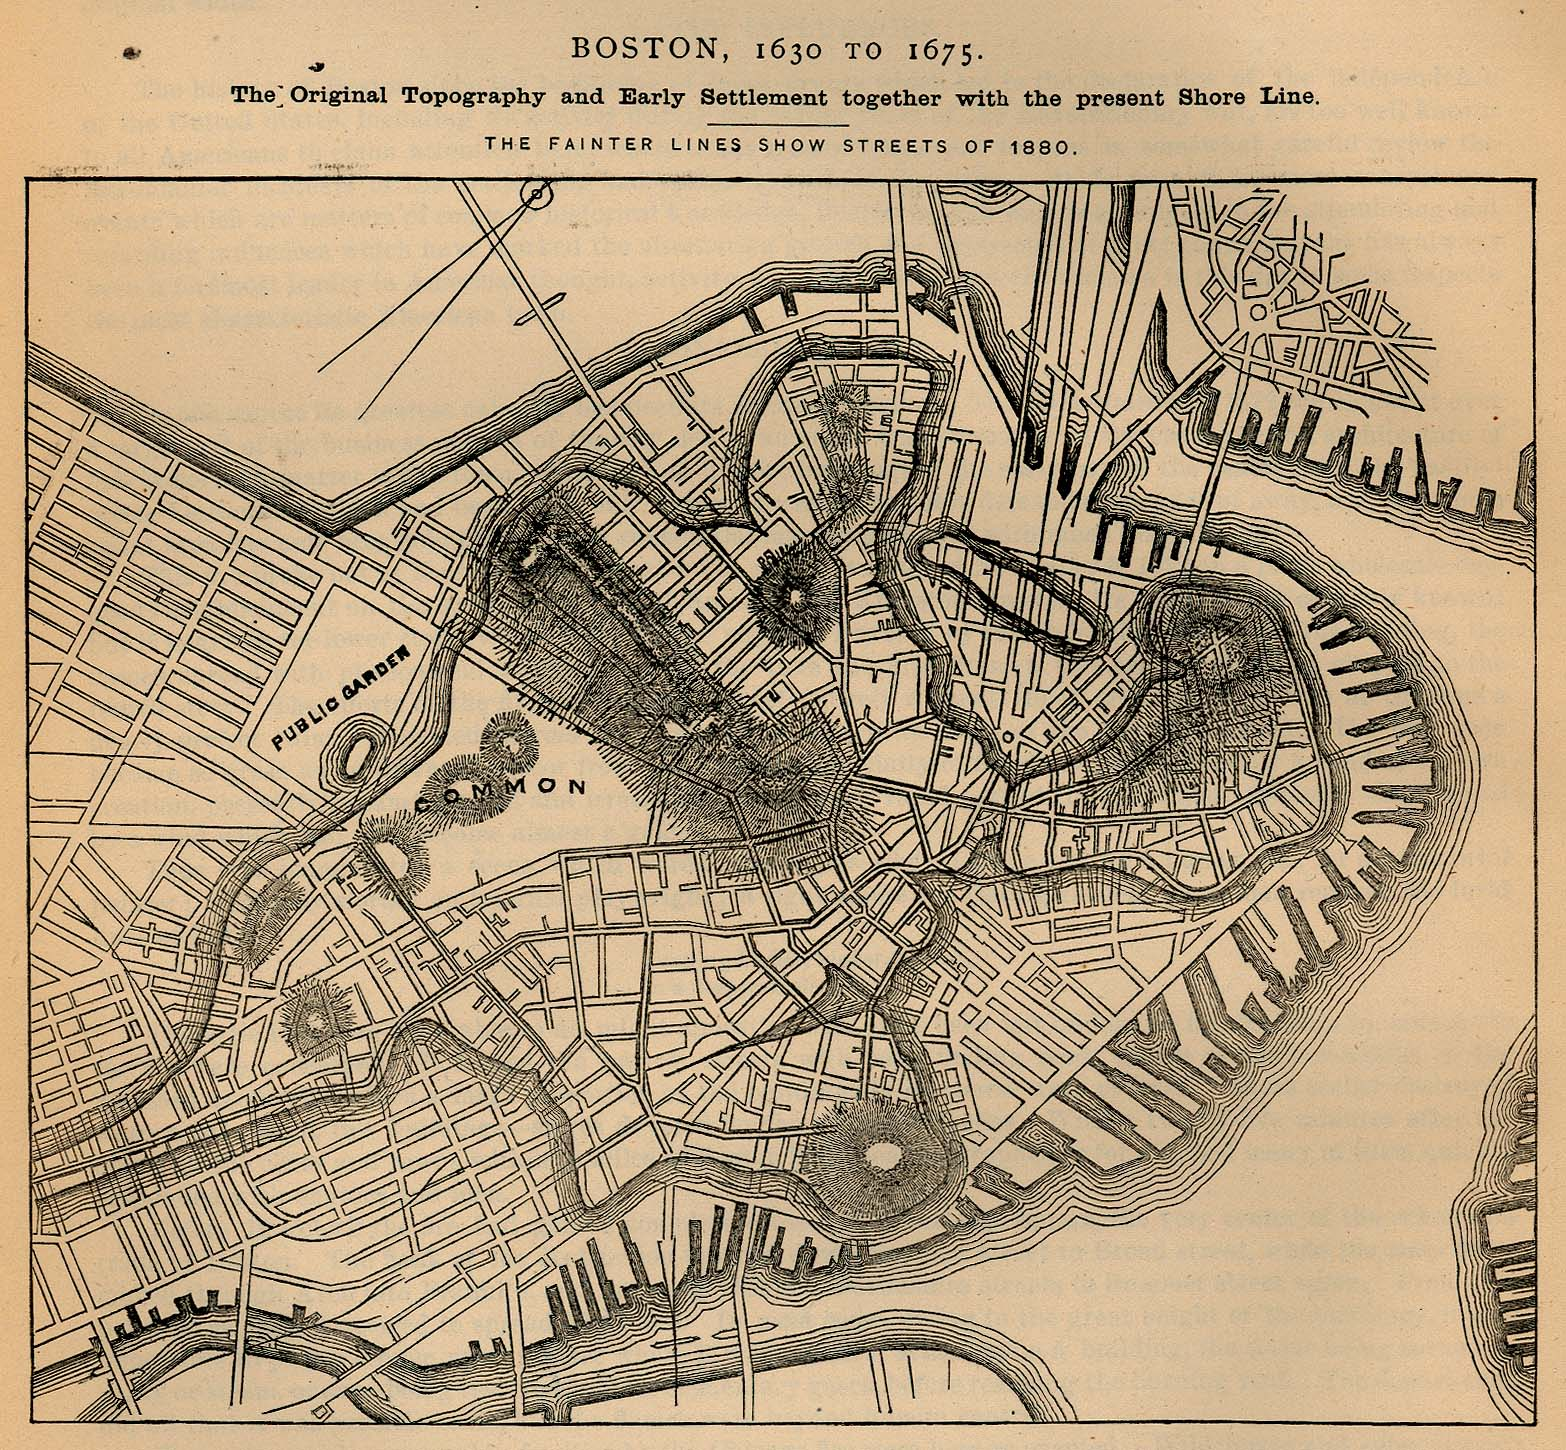 Mapa de la Ciudad de Boston, Massachusetts, Estados Unidos 1630 a 1675